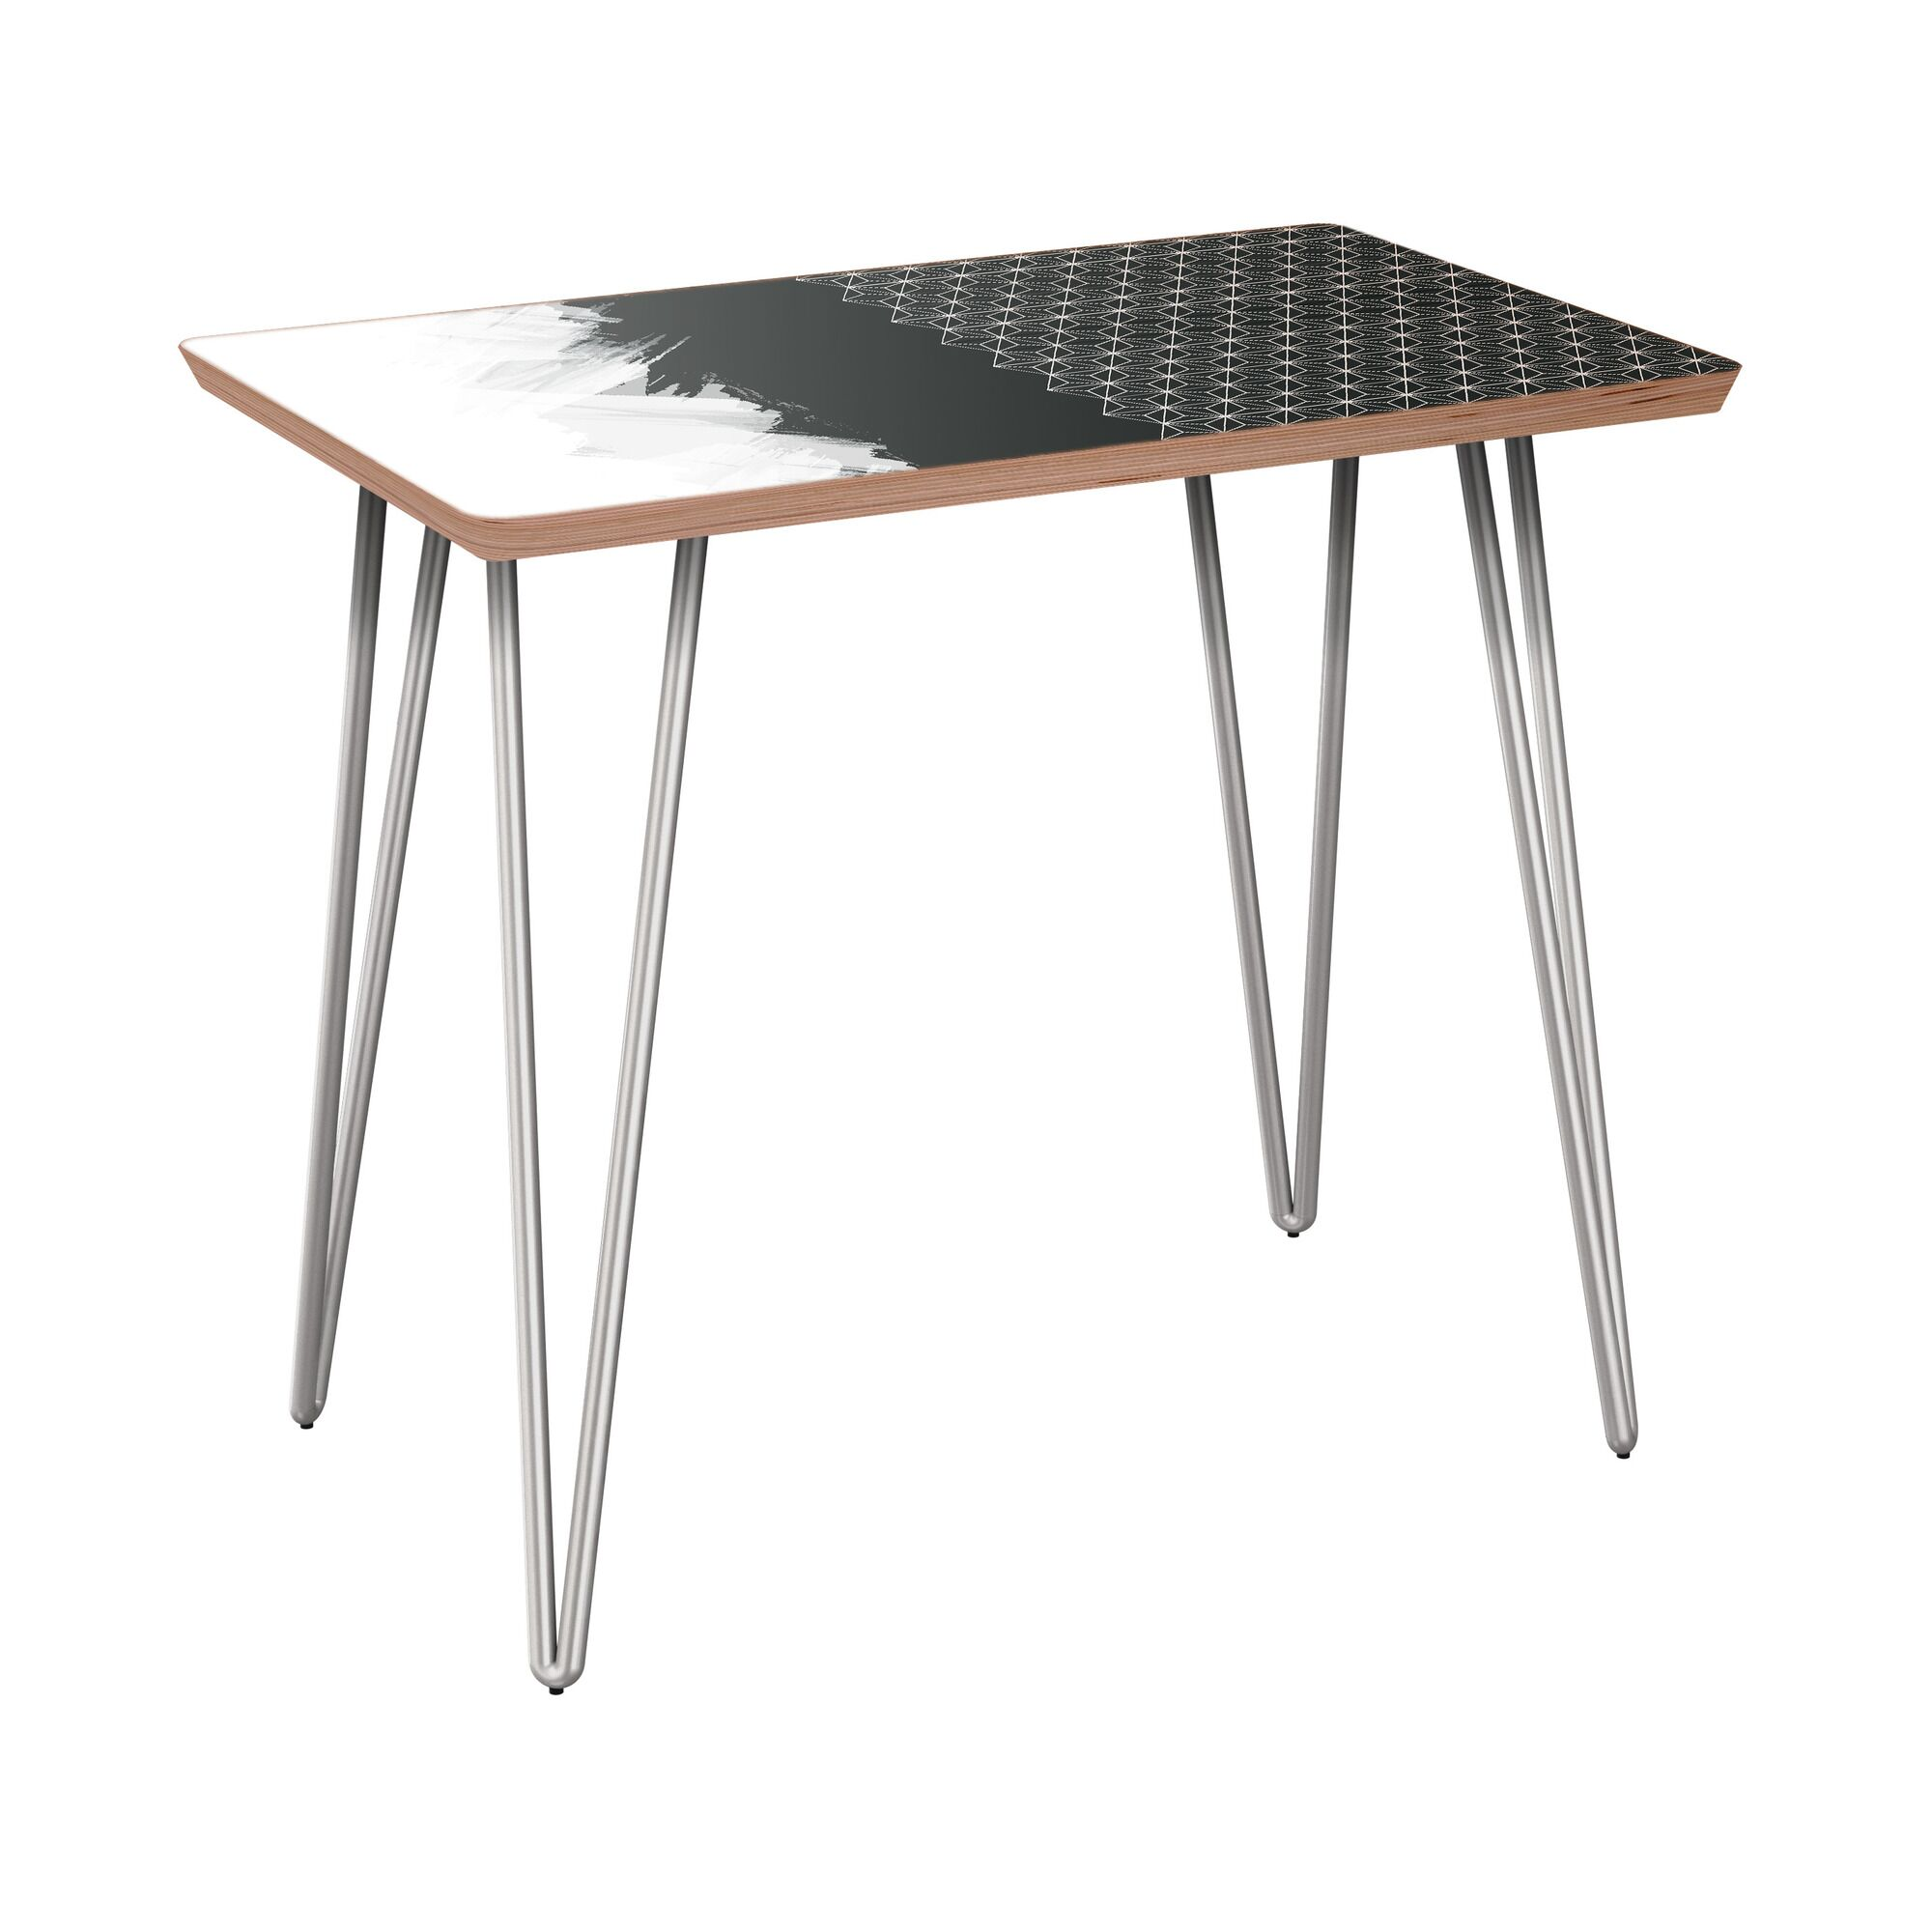 Fager End Table Table Base Color: Chrome, Table Top Color: Walnut